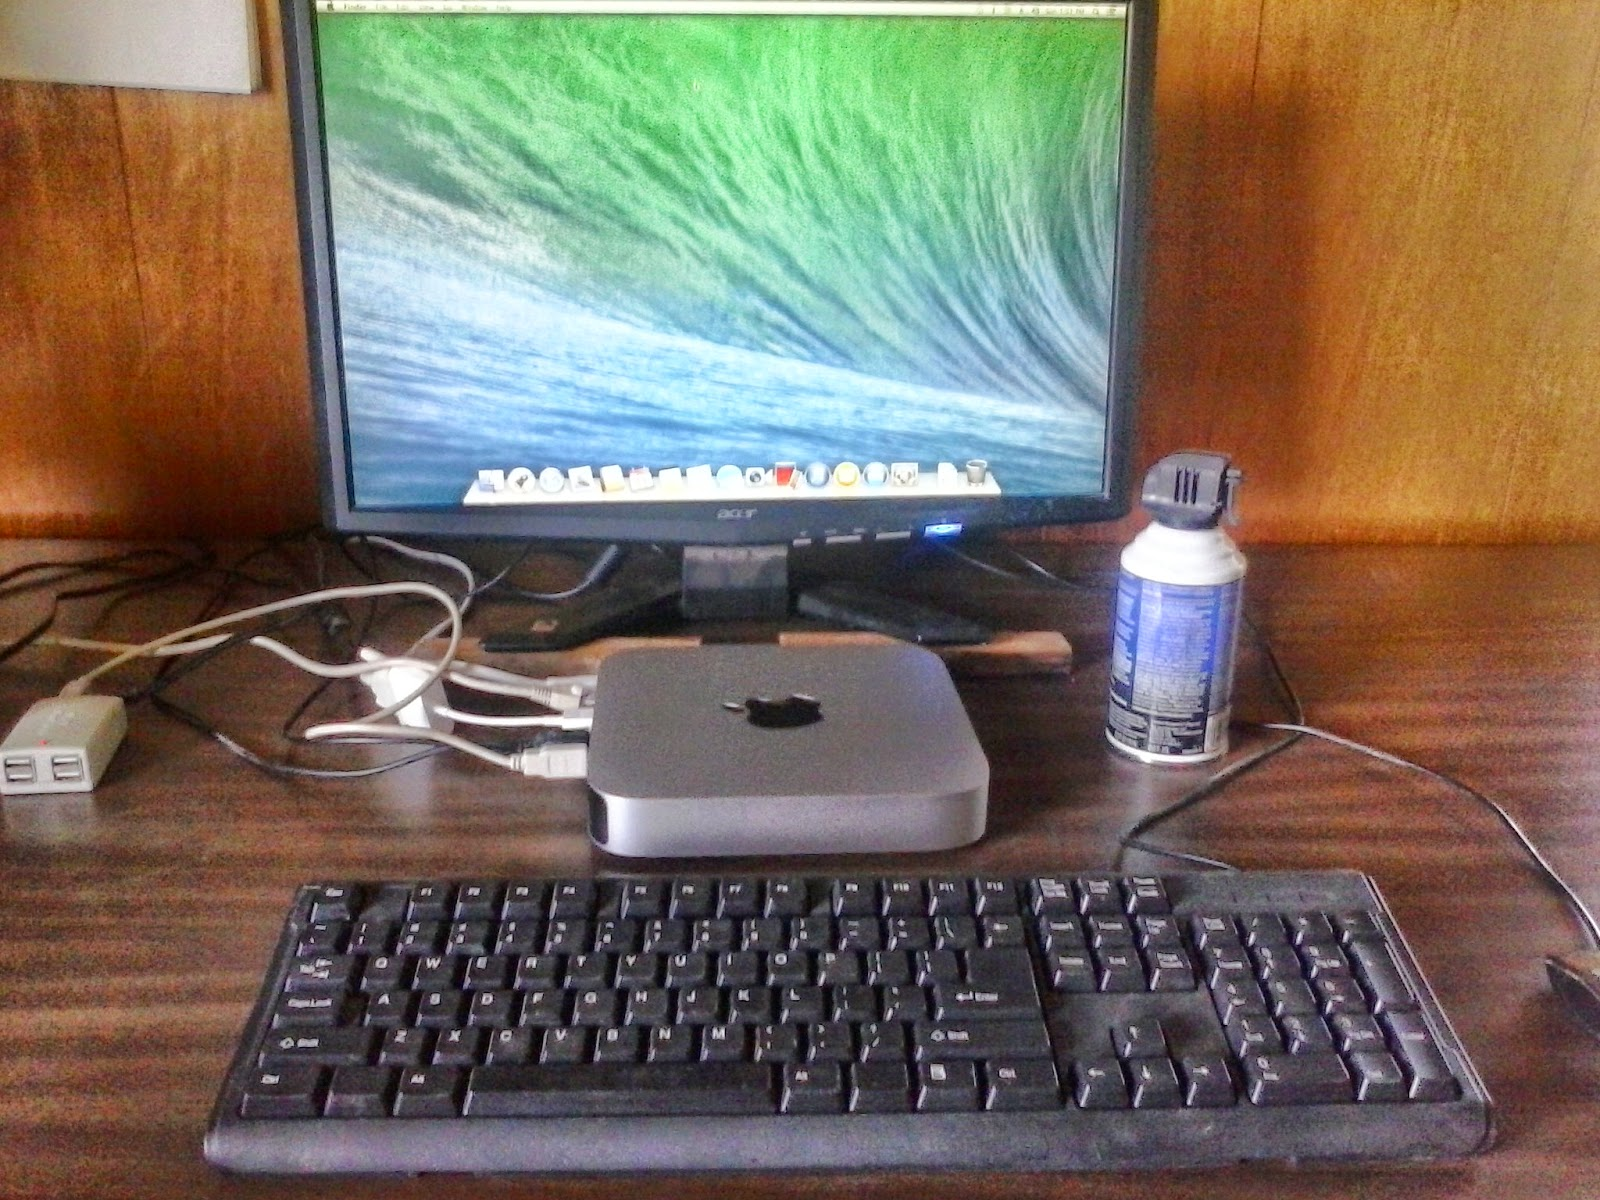 My MAC mini with leftover/spare USB keyboard, mouse and HDMI monitor. Ready to self-publish books...